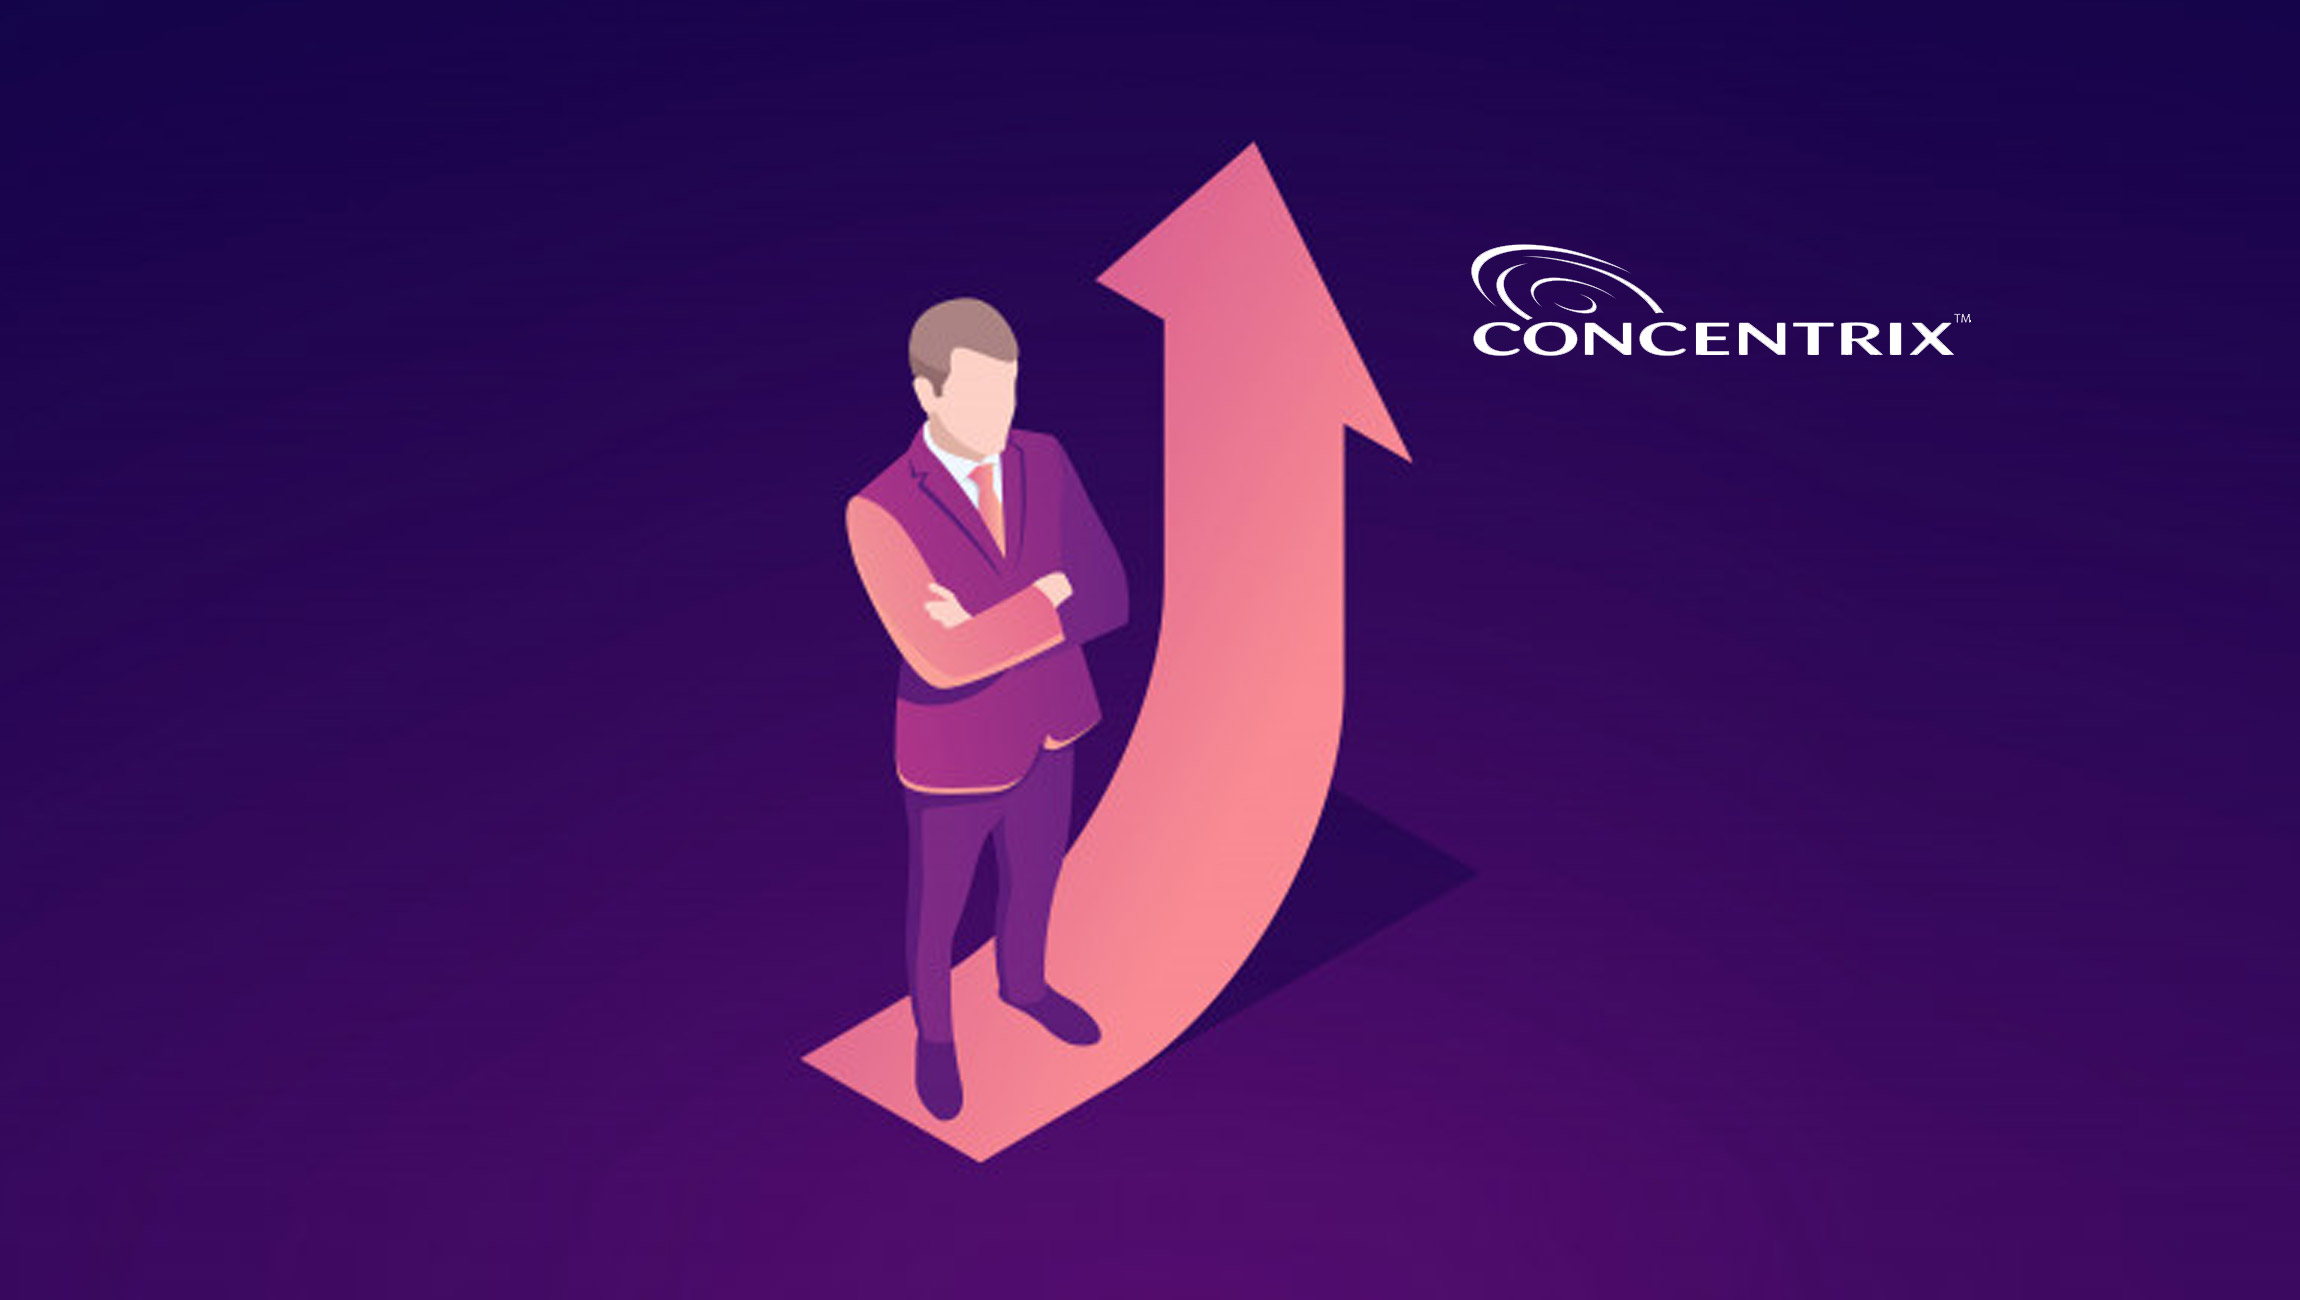 Concentrix Customer Feedback Management Platform Recognized as a Strong Performer by Independent Research Firm